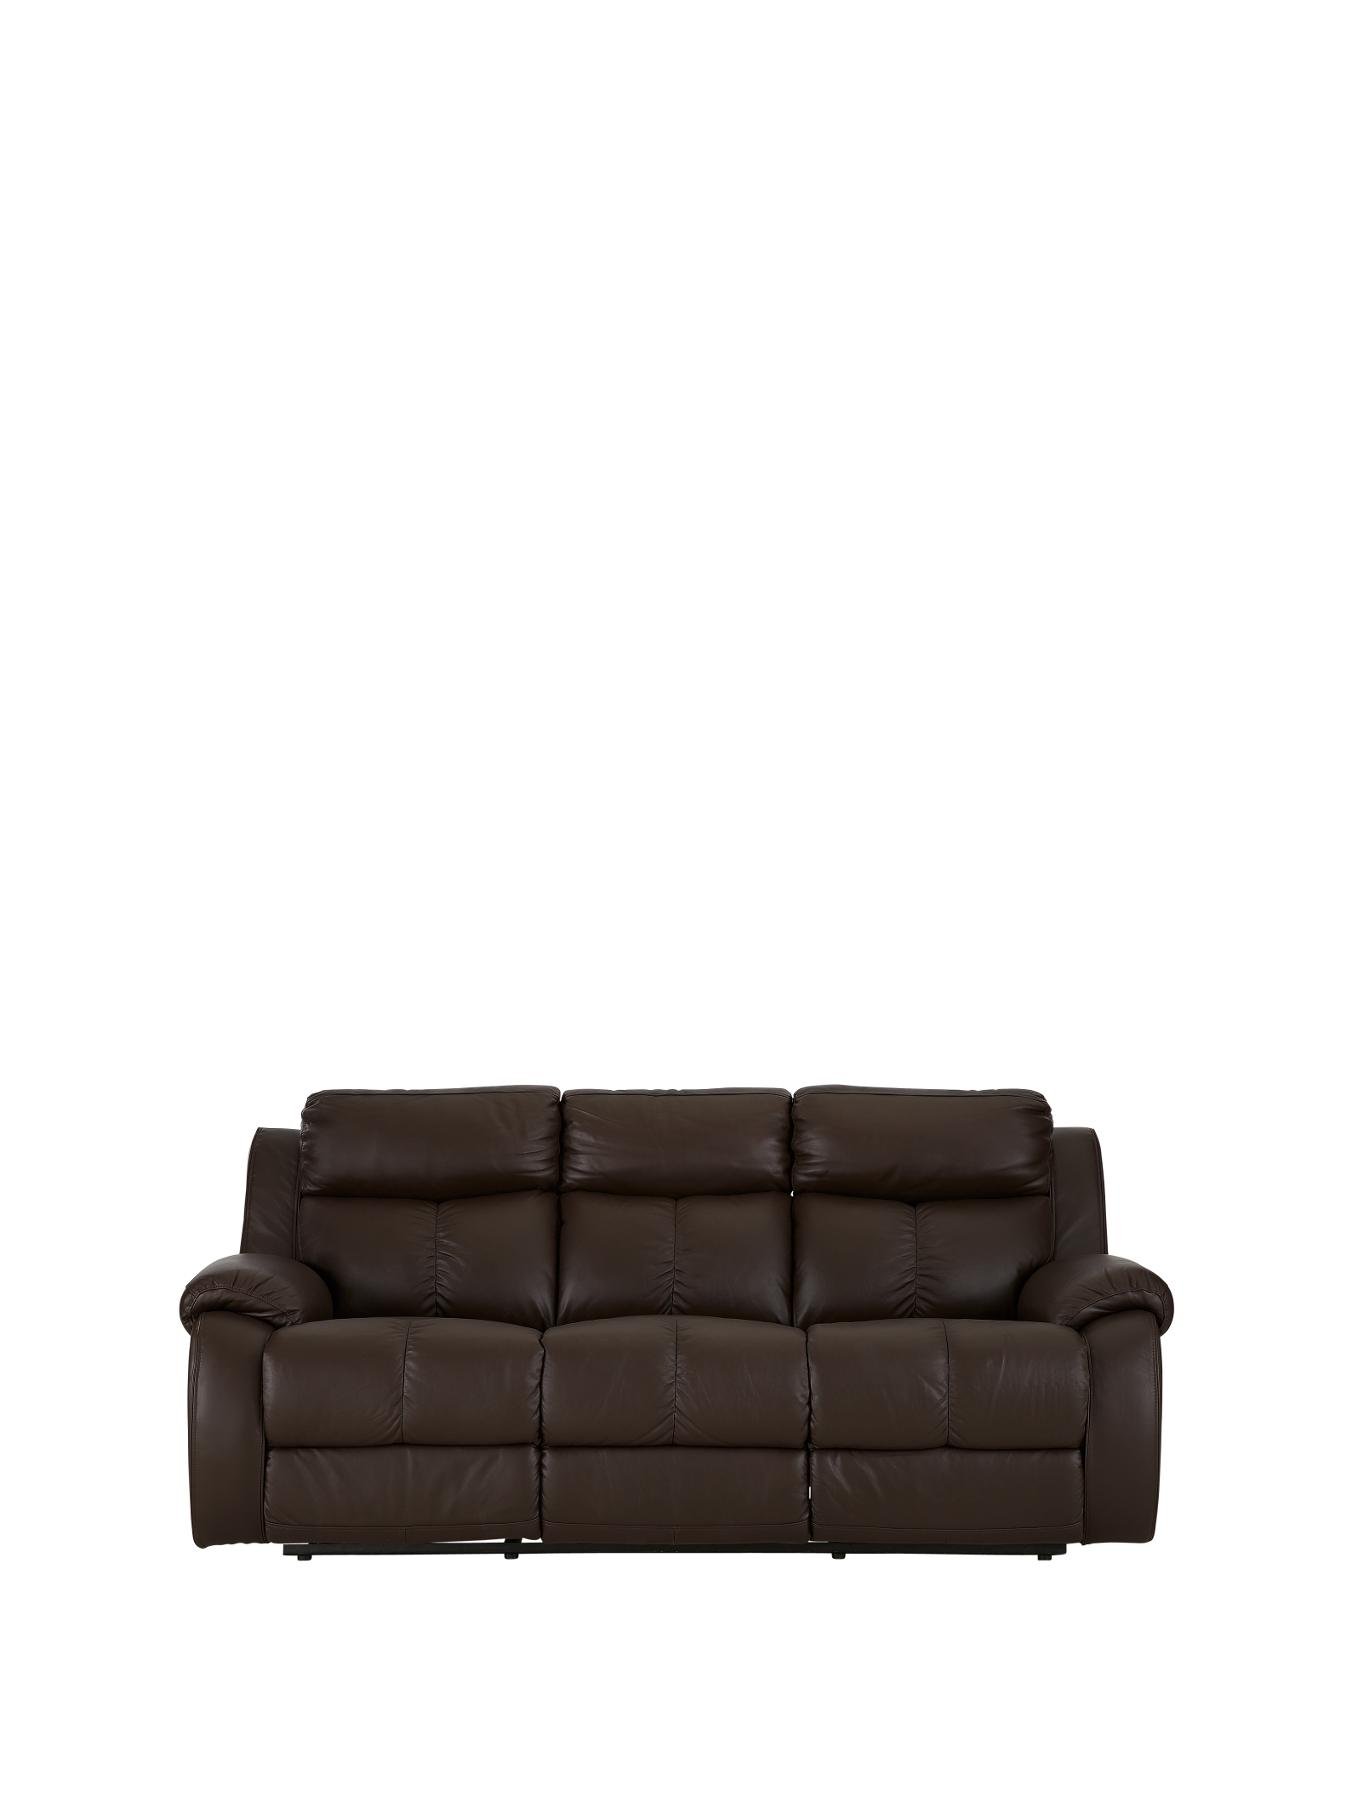 Littlewoods Catalogue Living Room From Littlewoods At